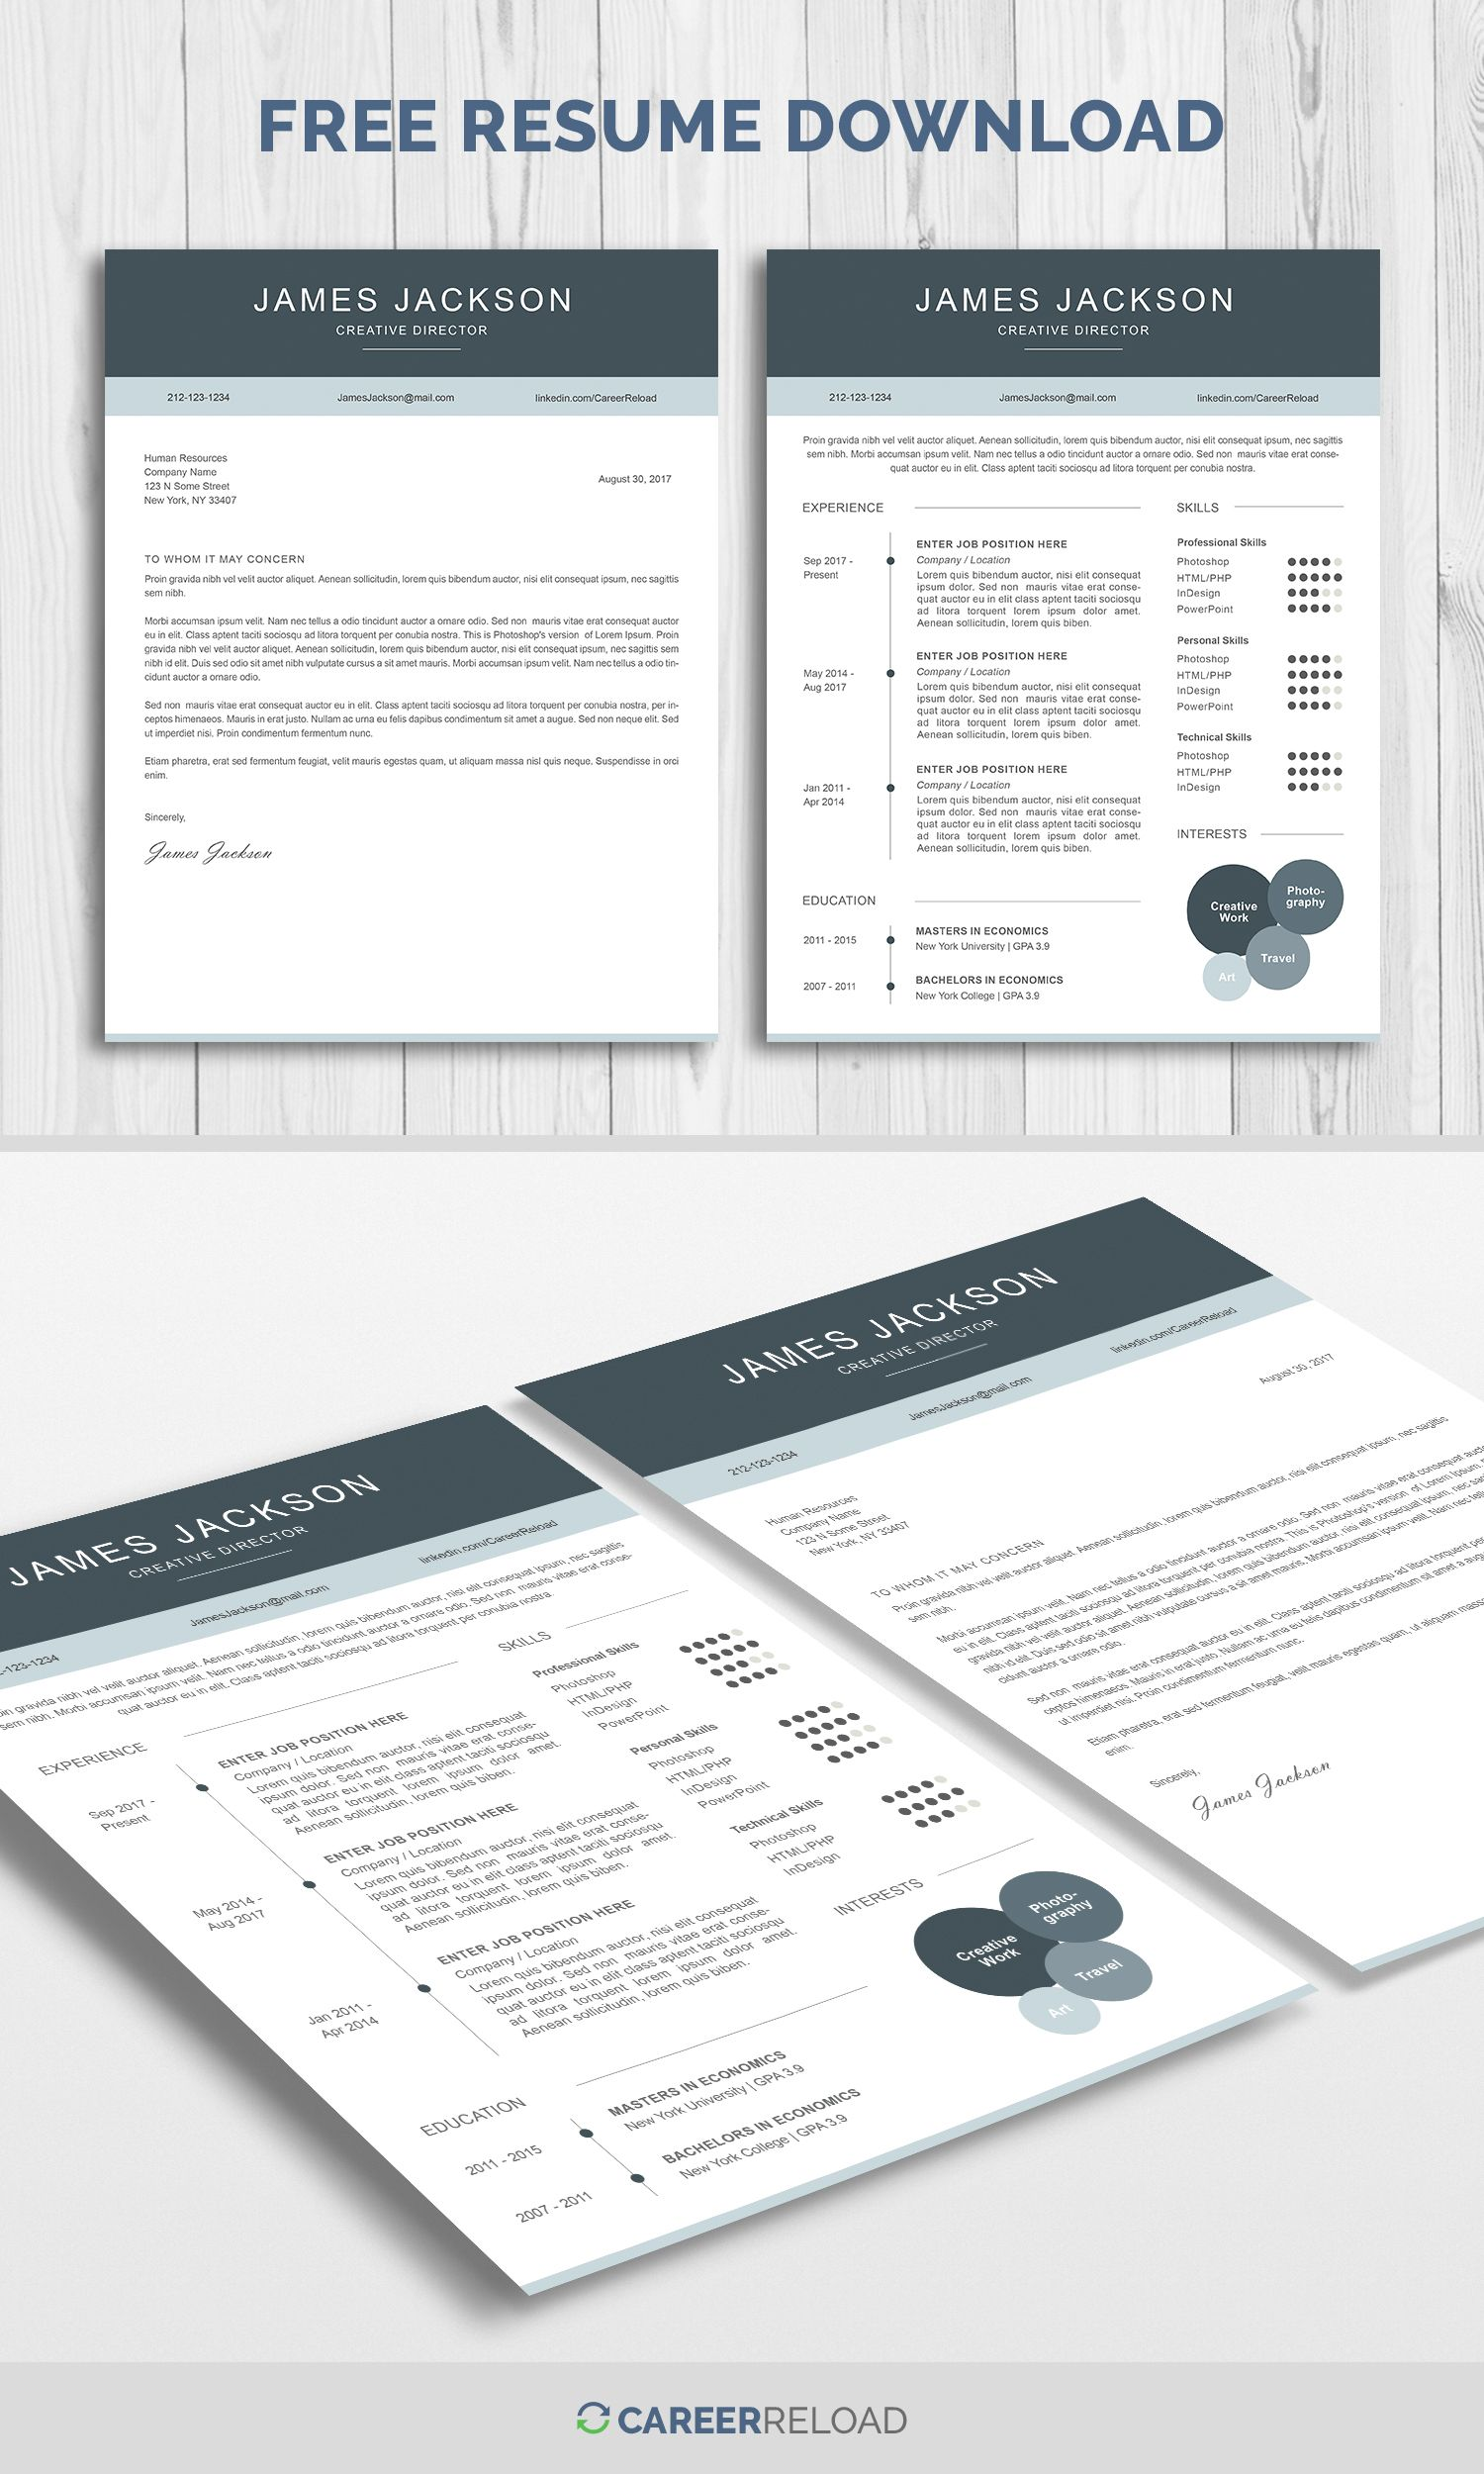 Free Resume Template And Cover Letter Download  Working Smarter